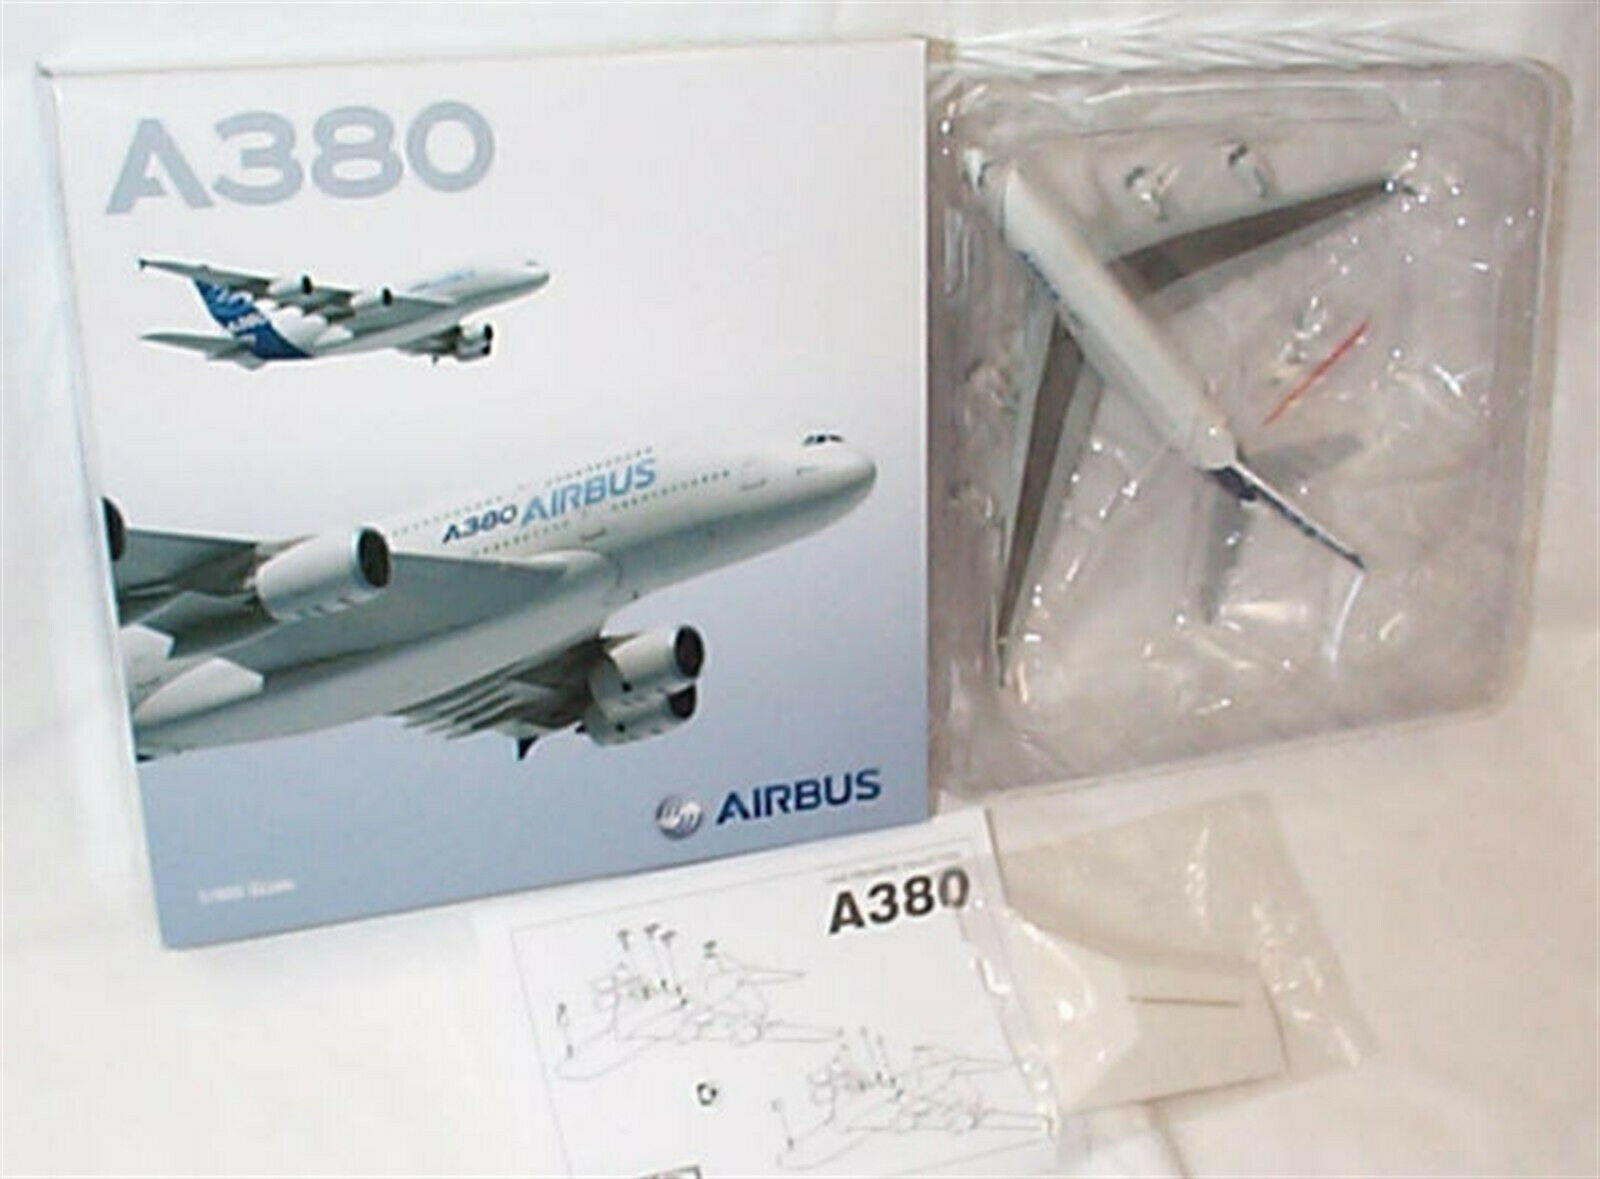 Airbus A380 aircraft Dragon wings New in Box 56359